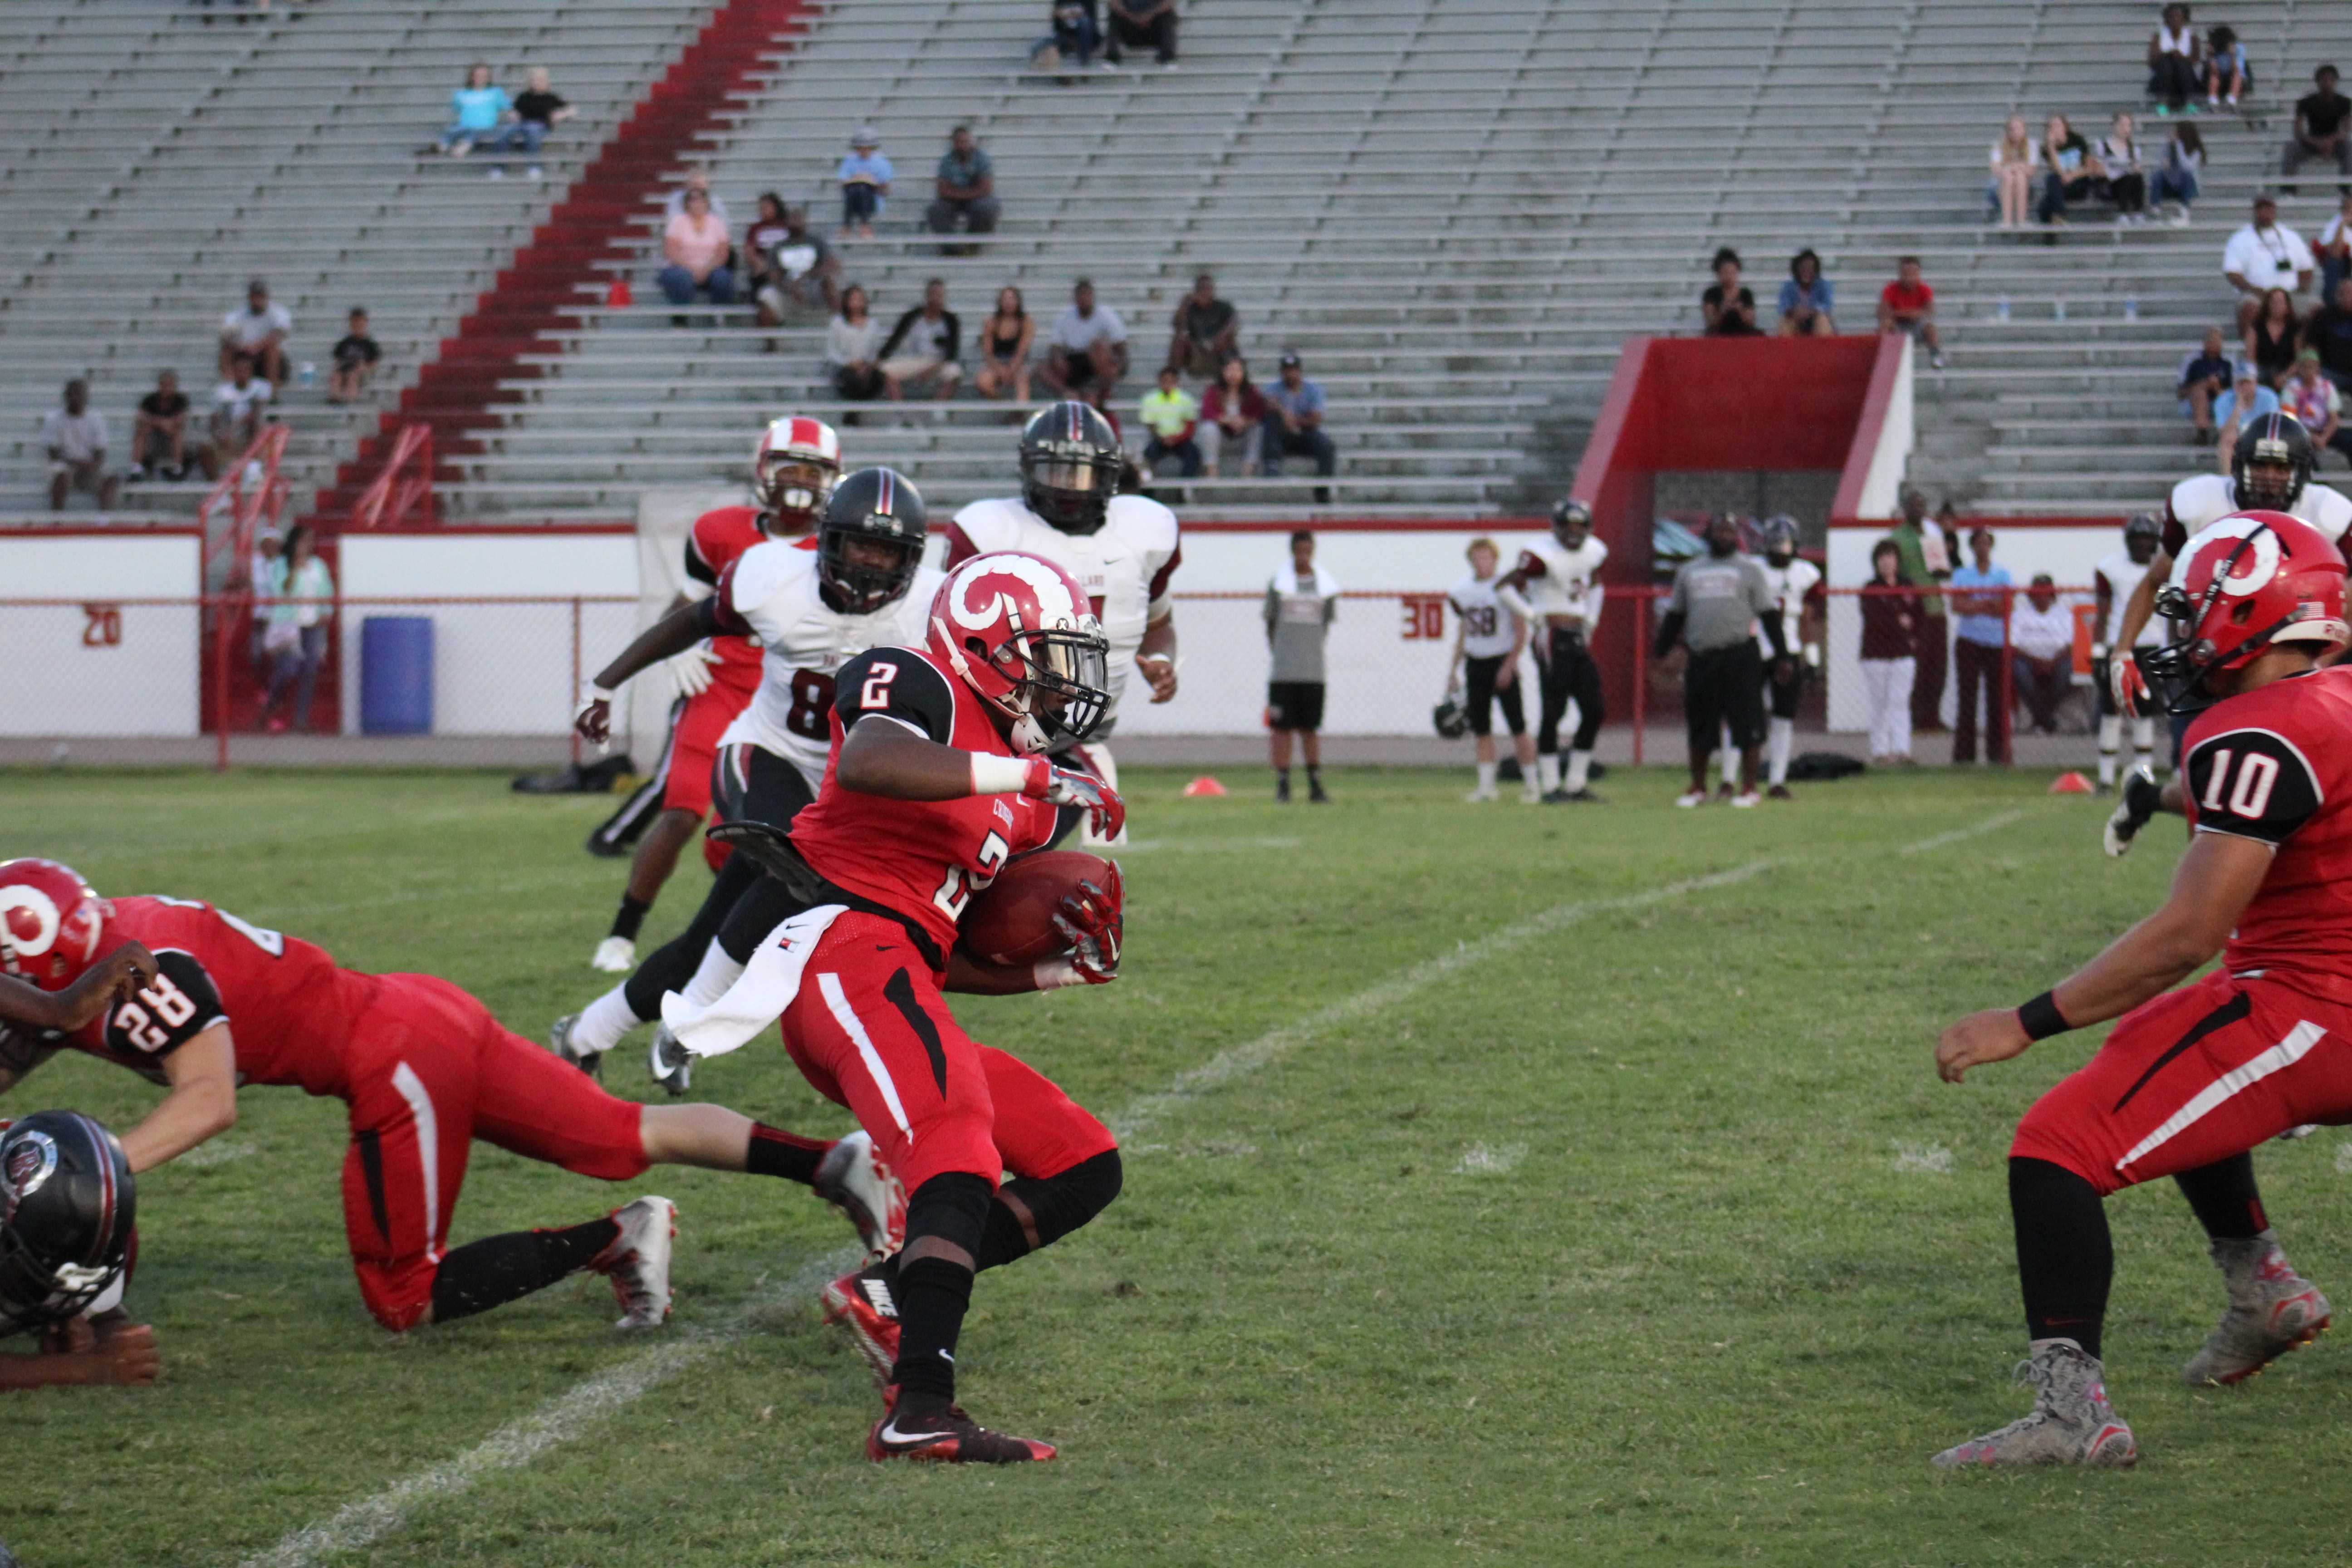 Crimsons take over at the 30 yard line after Omari Alexander's (12, #2) return in the first half. Photo by Kate Hatter